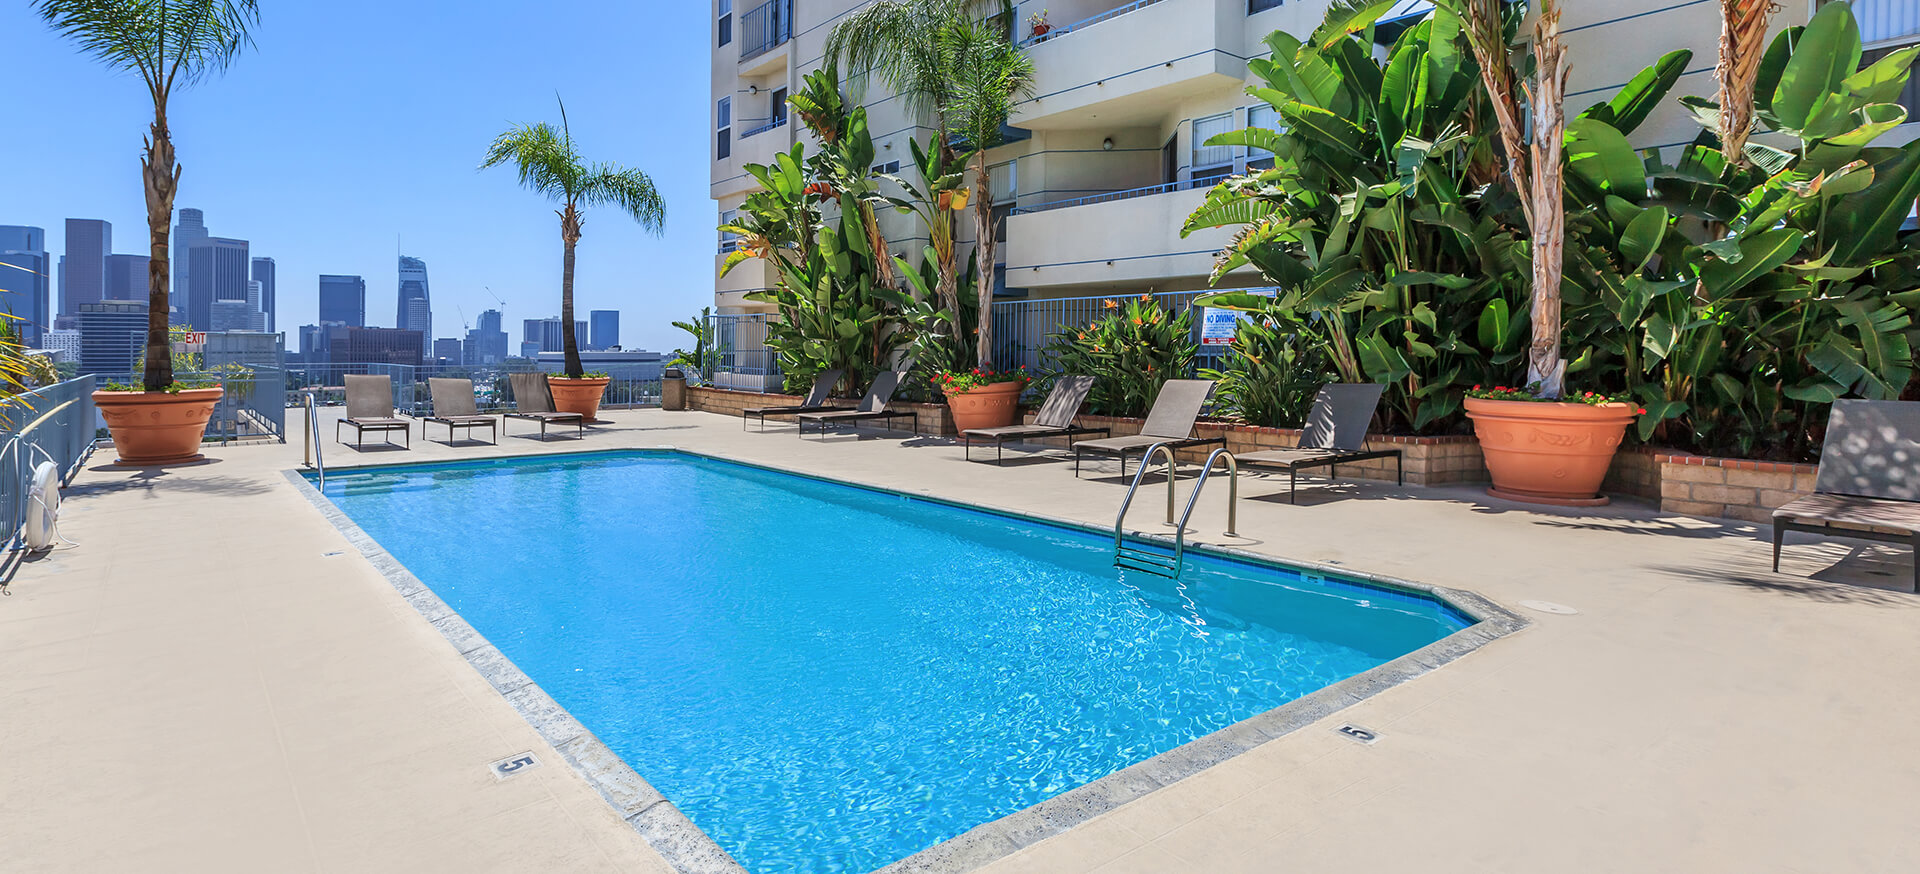 Skyline terrace apartments in los angeles ca for The terrace apartments